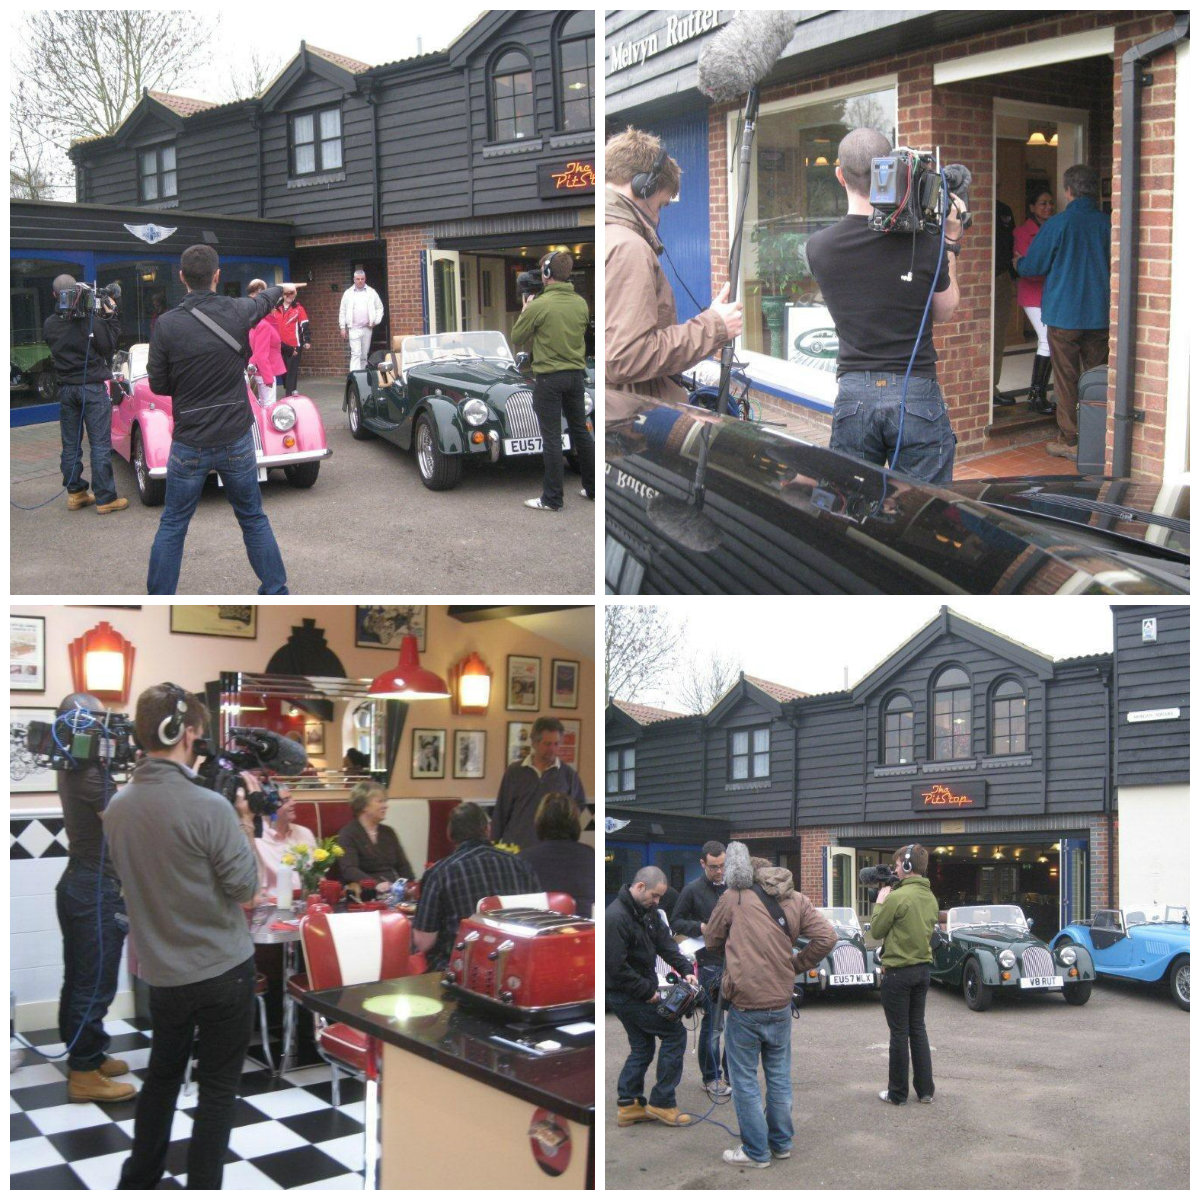 The PitStop Hotel on BBC 4 in a bed - Essex B&B